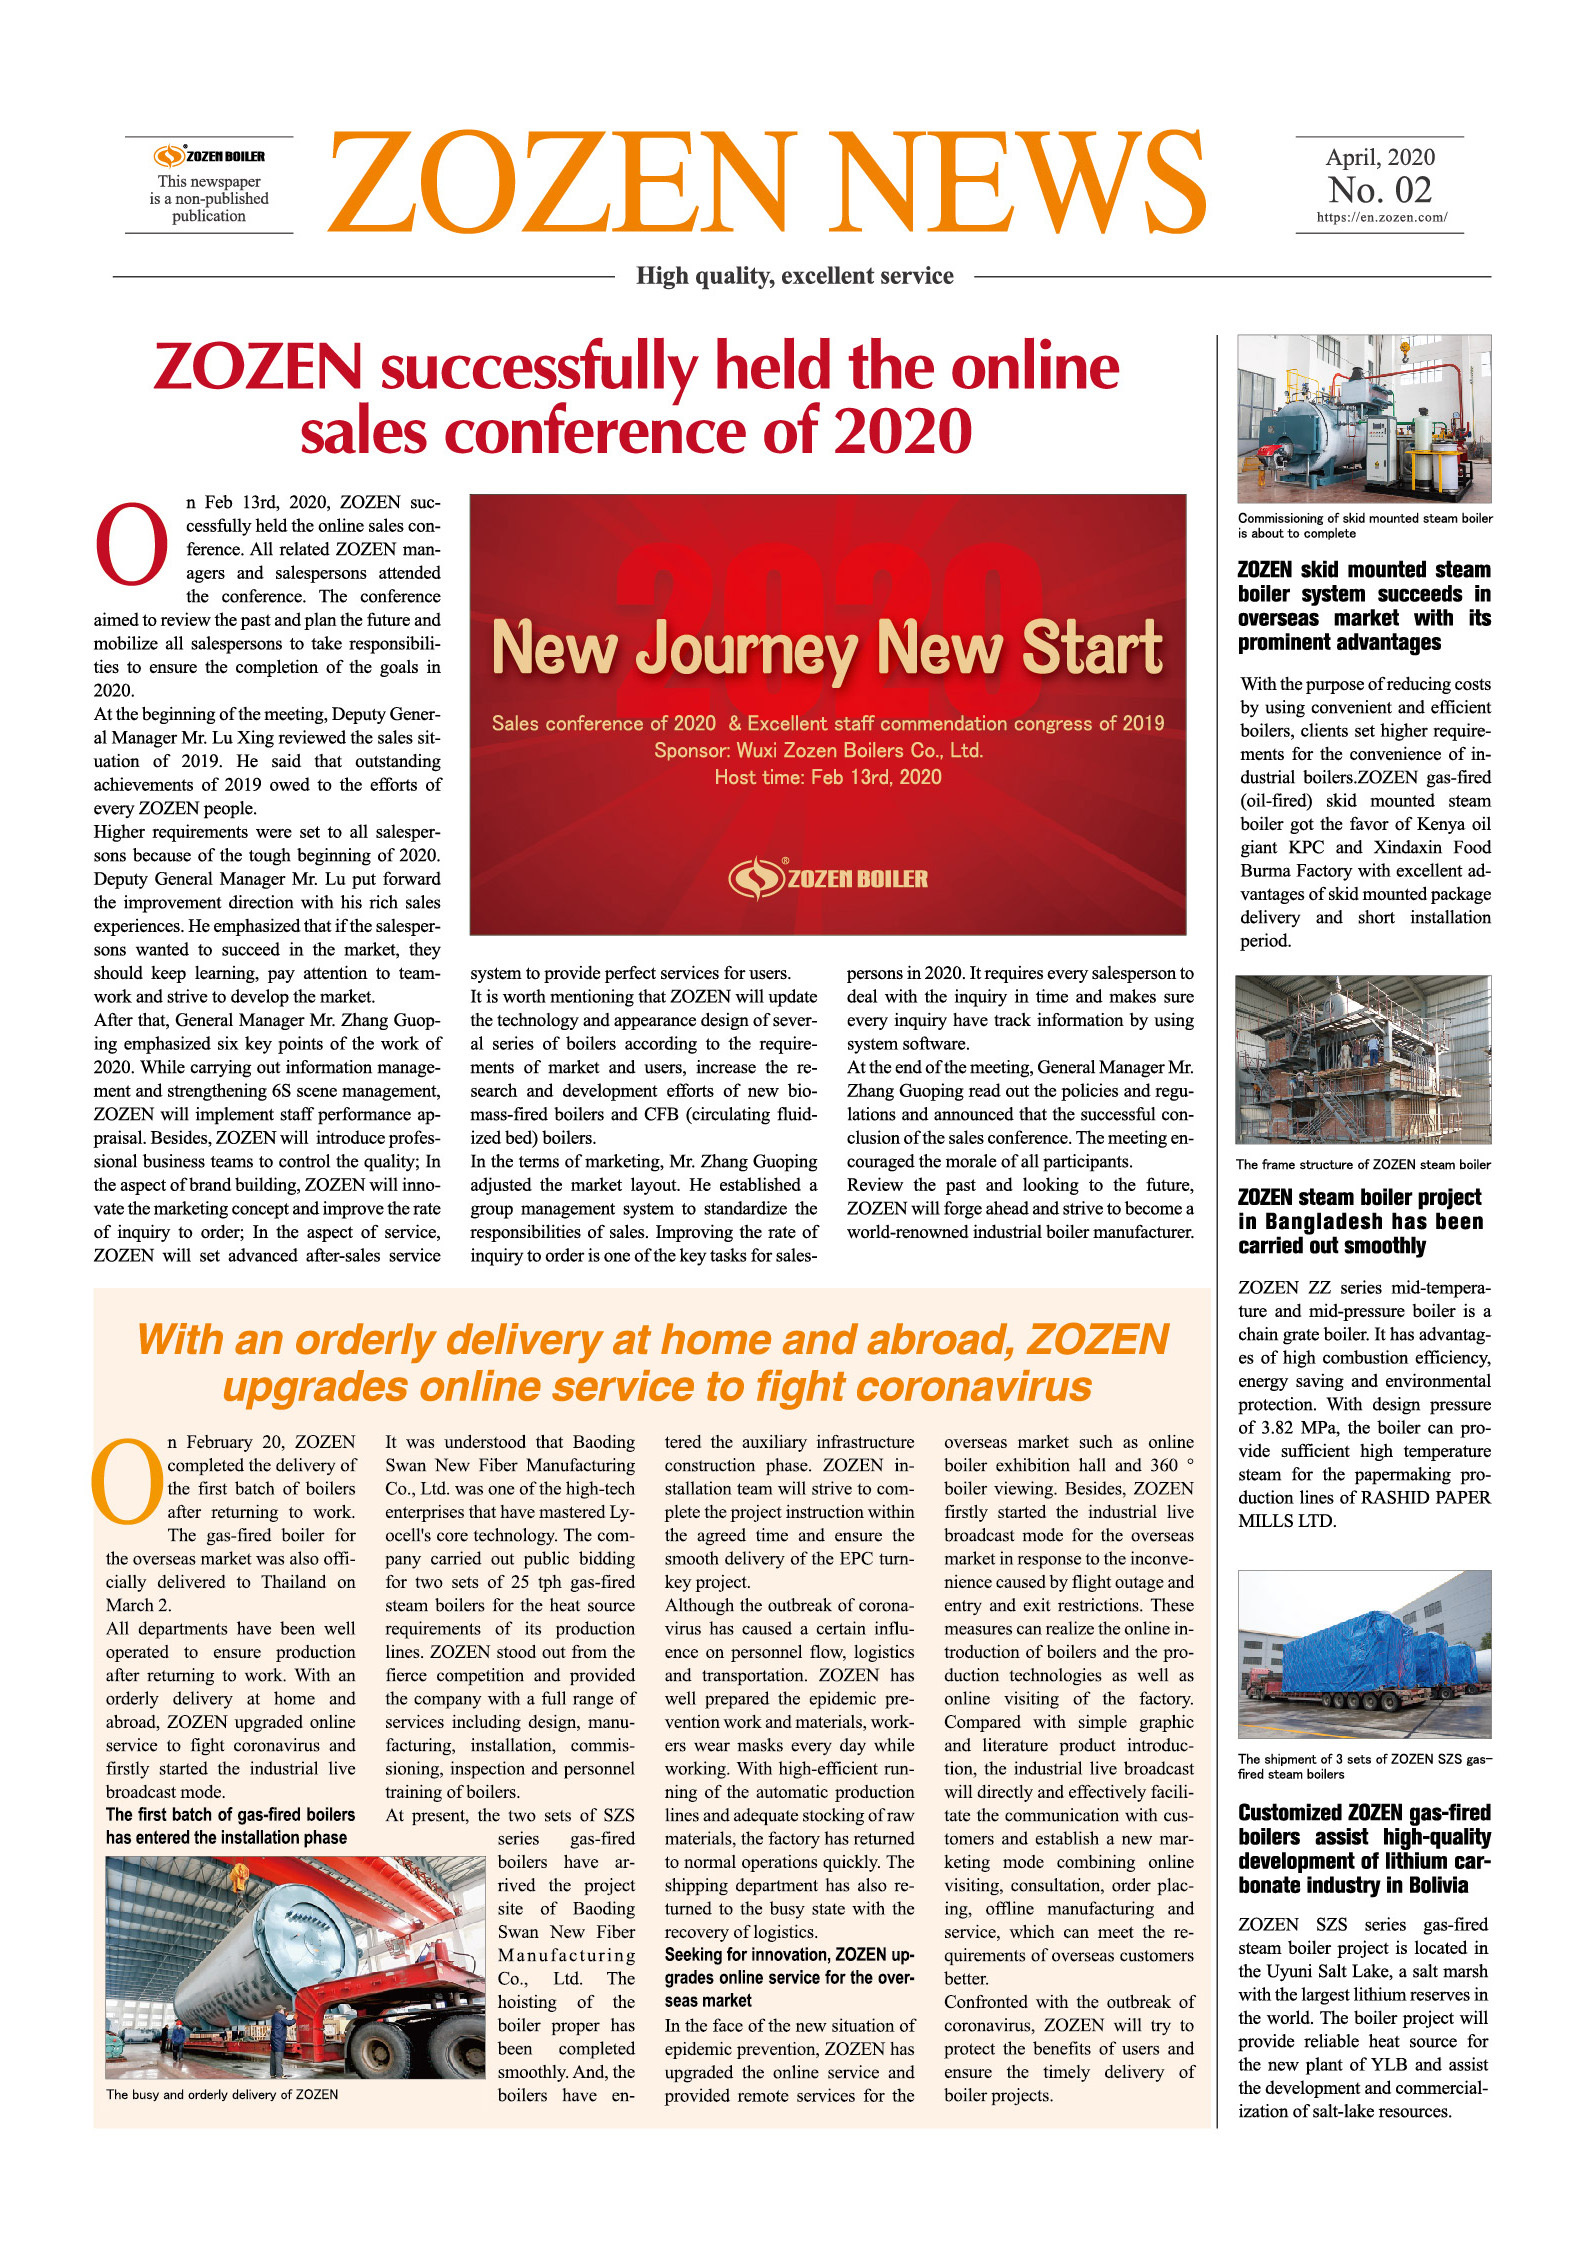 ZOZEN NEWS NO.2